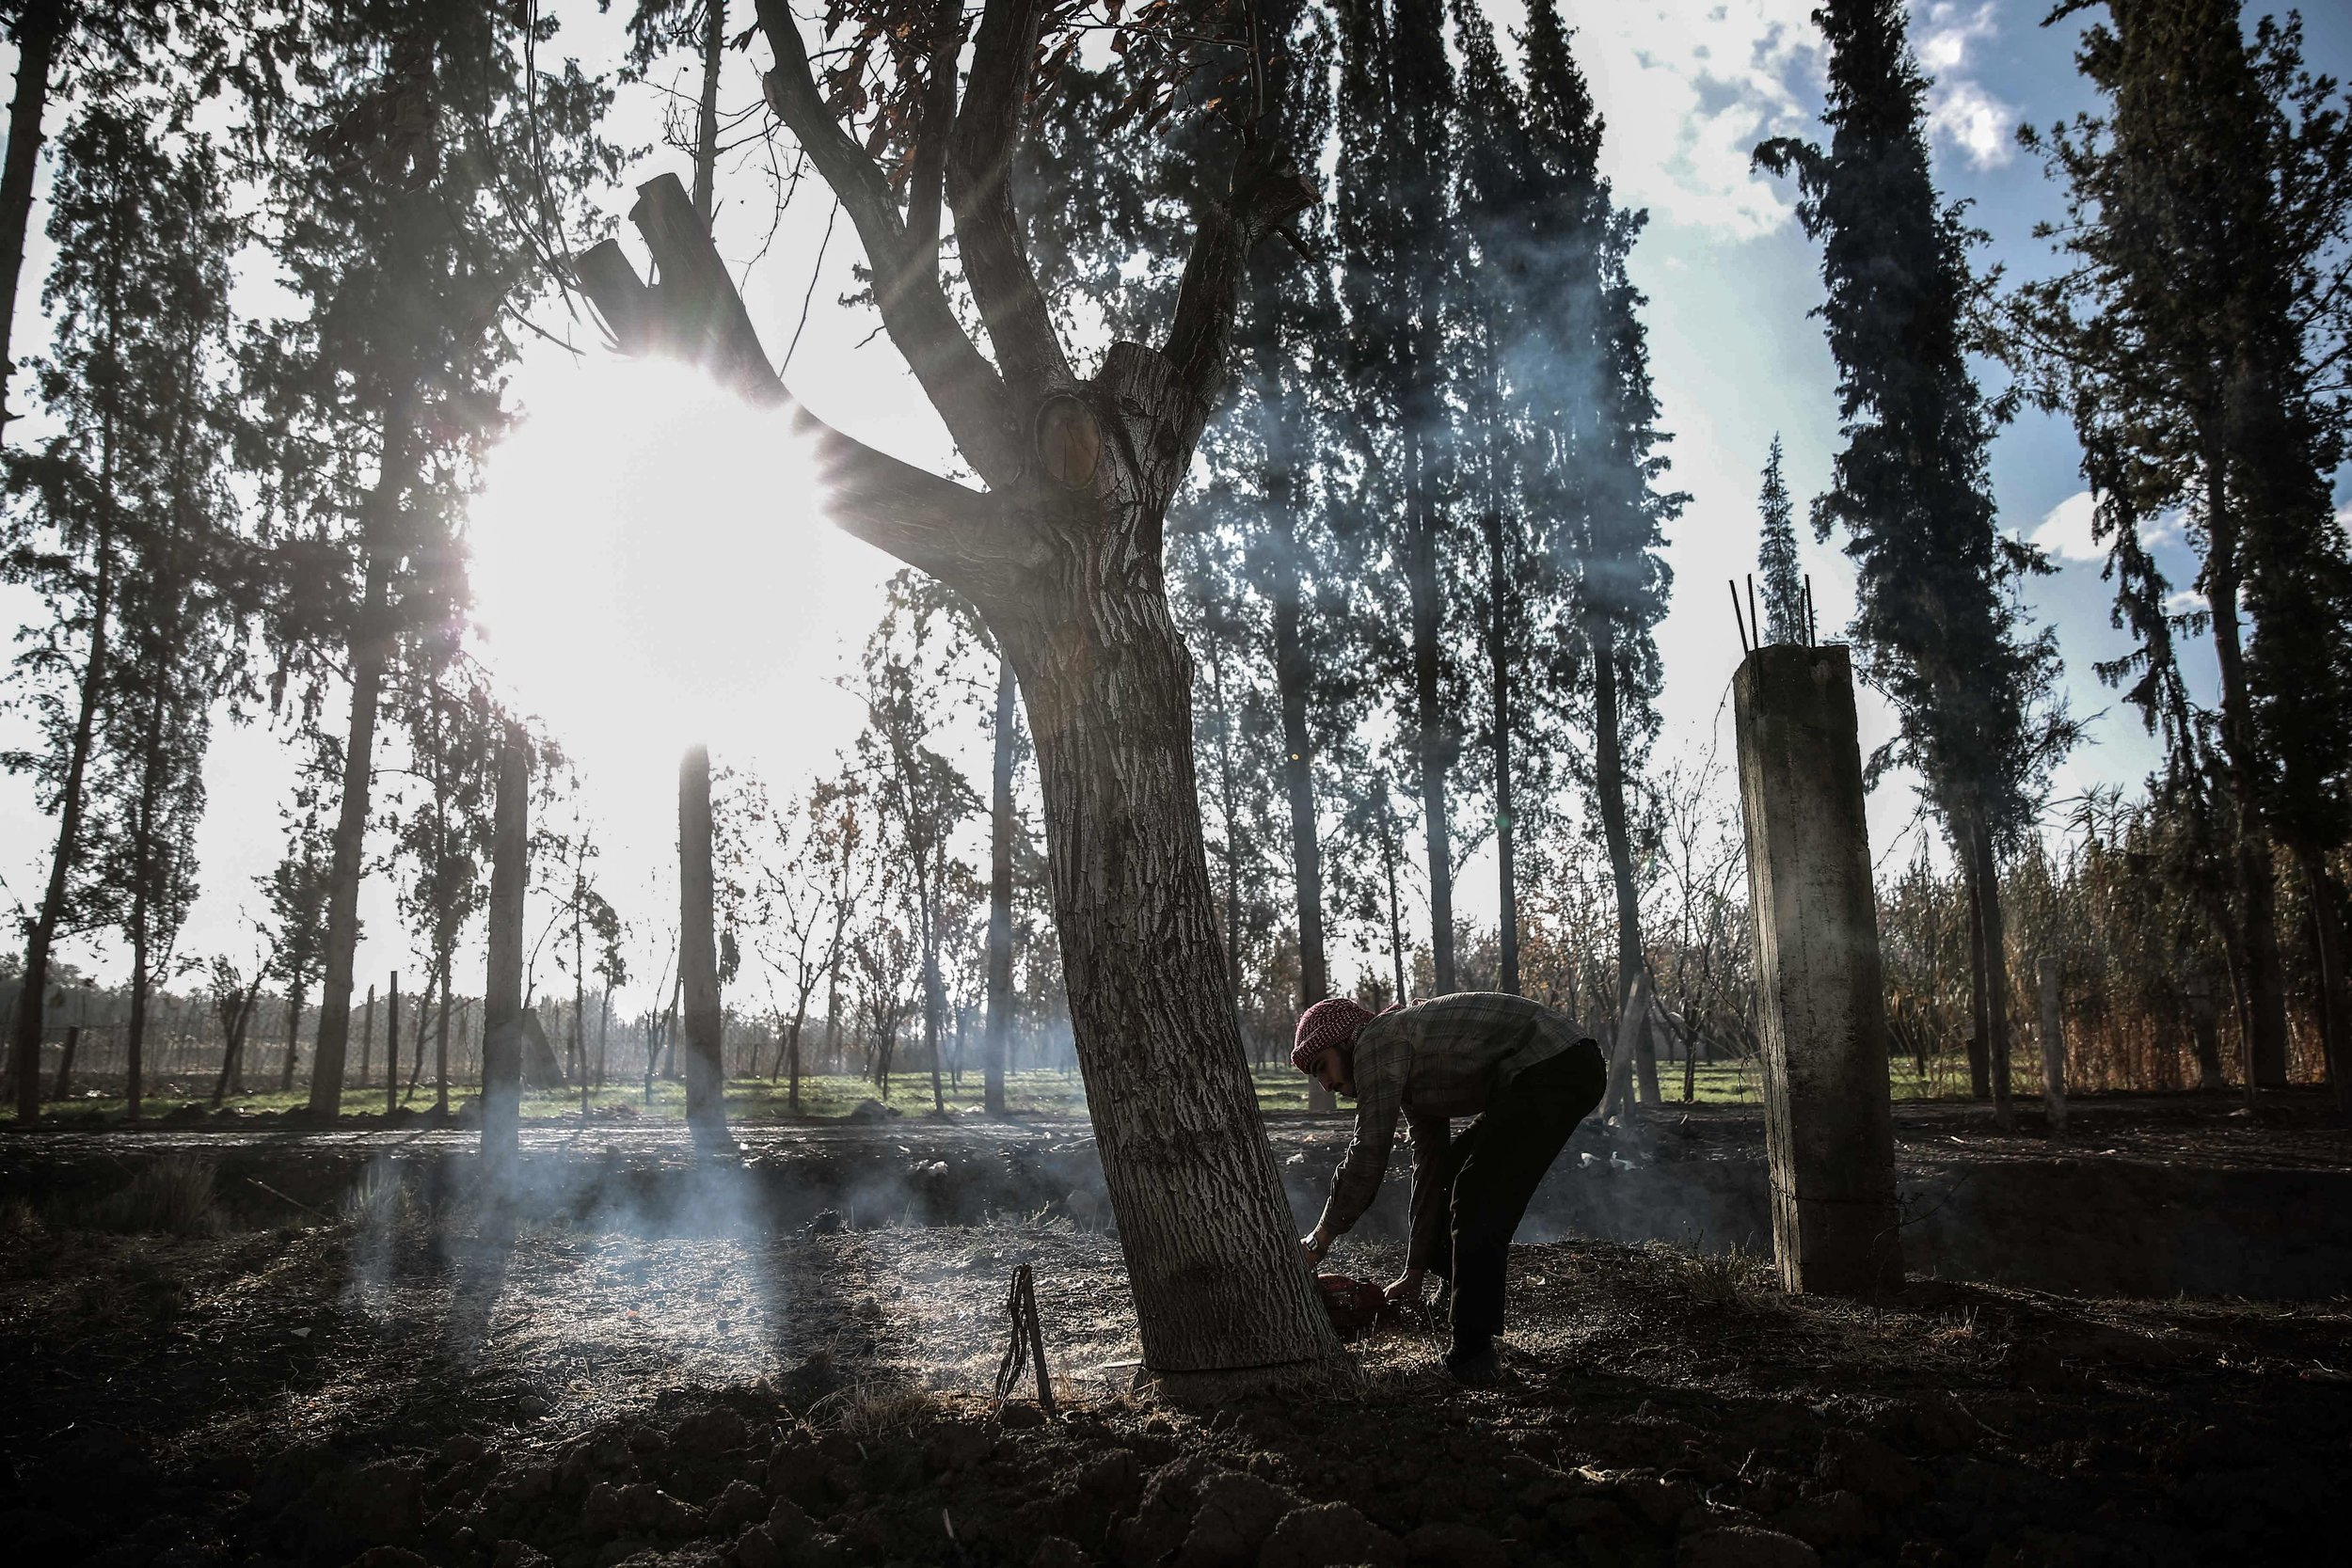 - A man cuts down a tree for firewood used for heating and cooking.